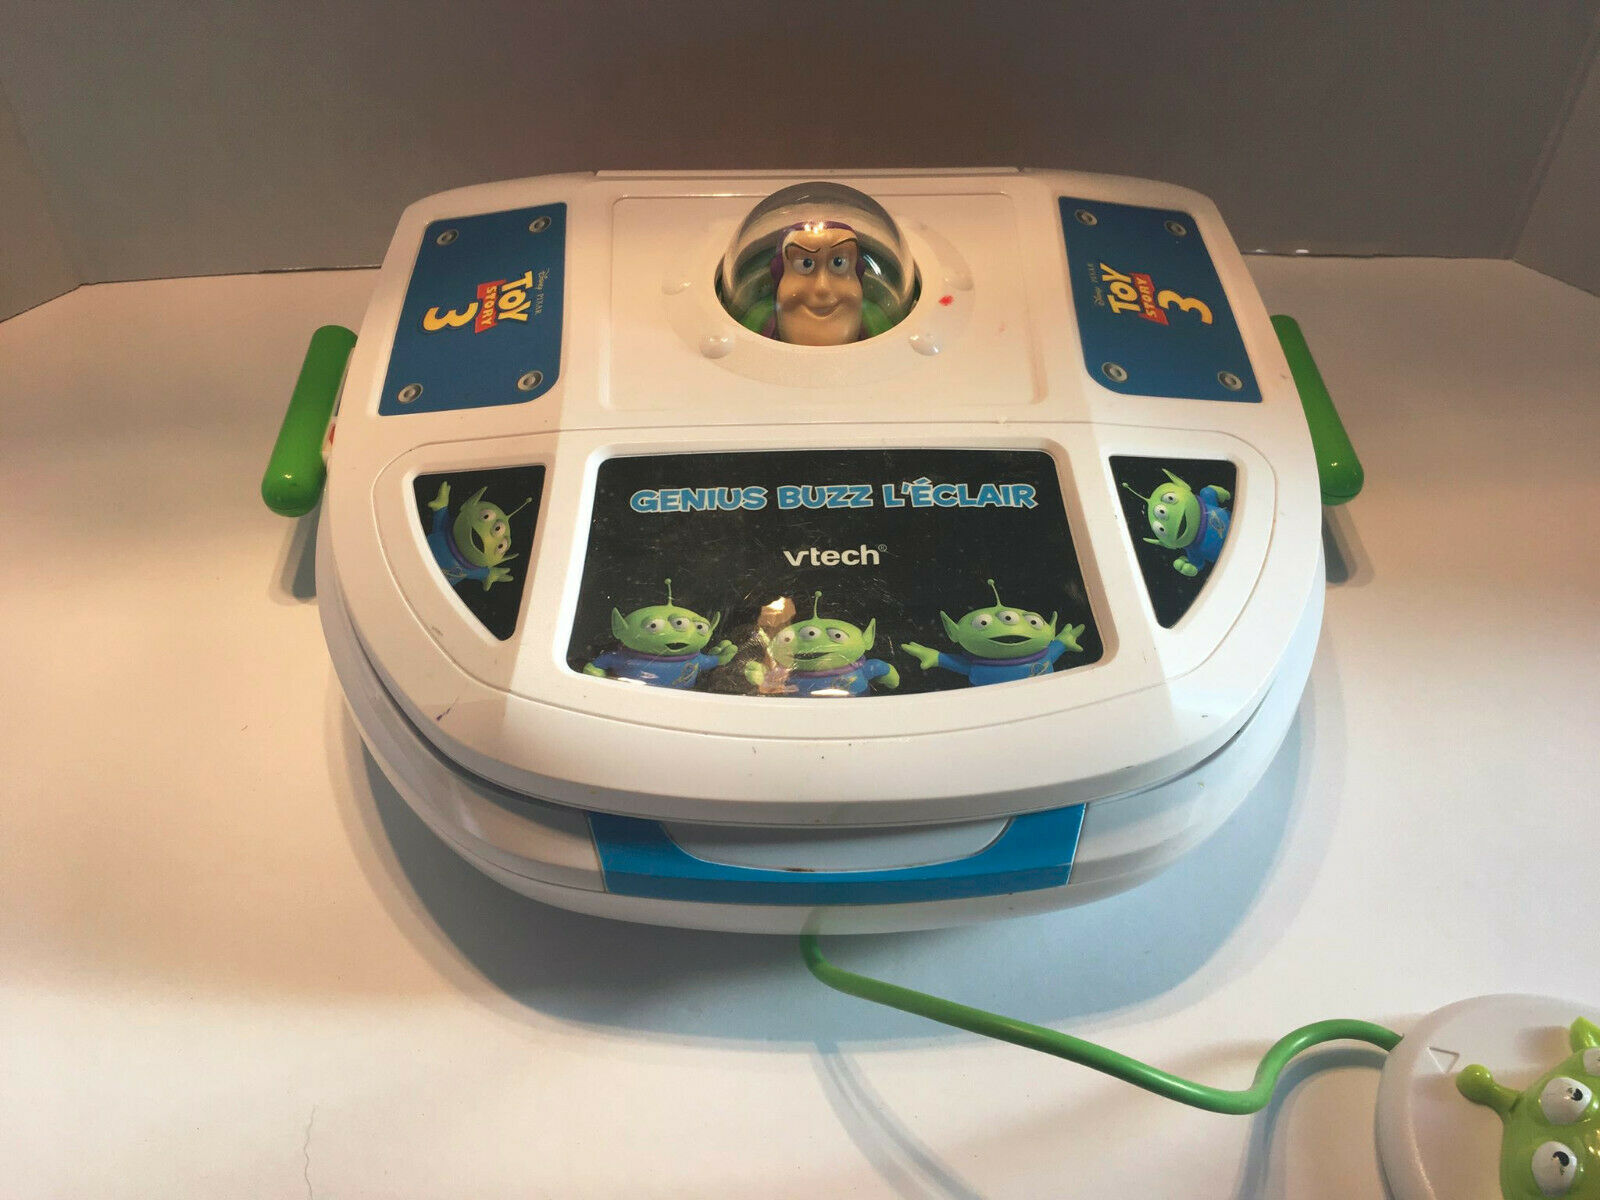 Vtech – Toy Story 3 - ordinateur  Educatif Buzz l'éclair